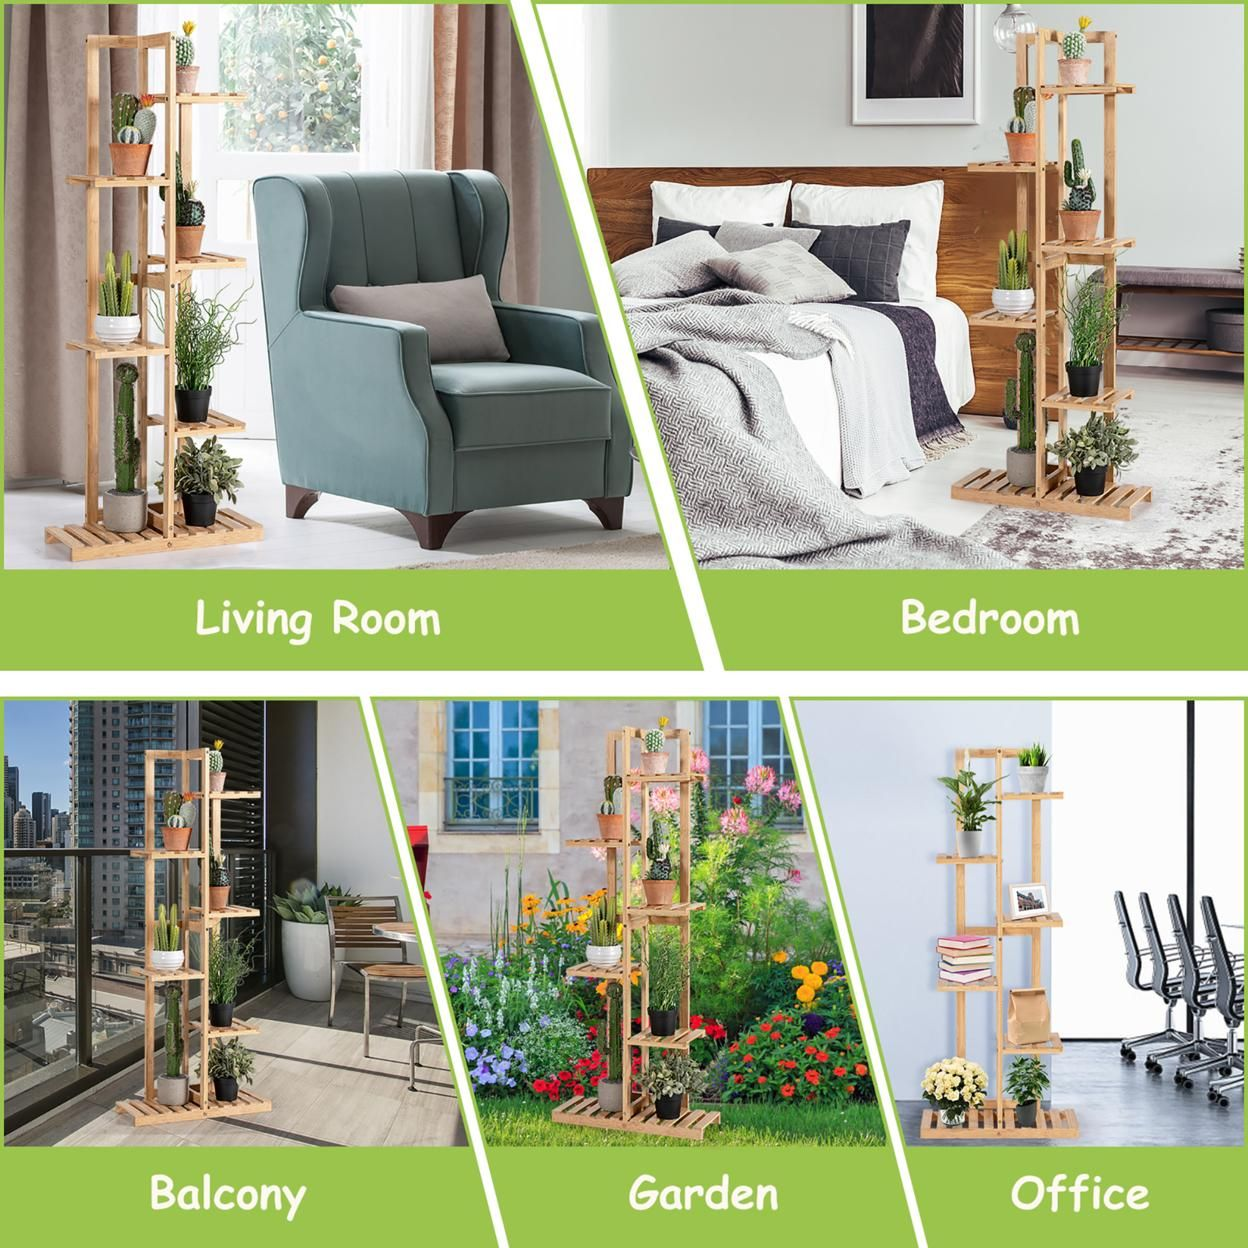 Costway 6 Tier 7 Potted Plant Stand Rack Bamboo Display Shelf for Patio Yard